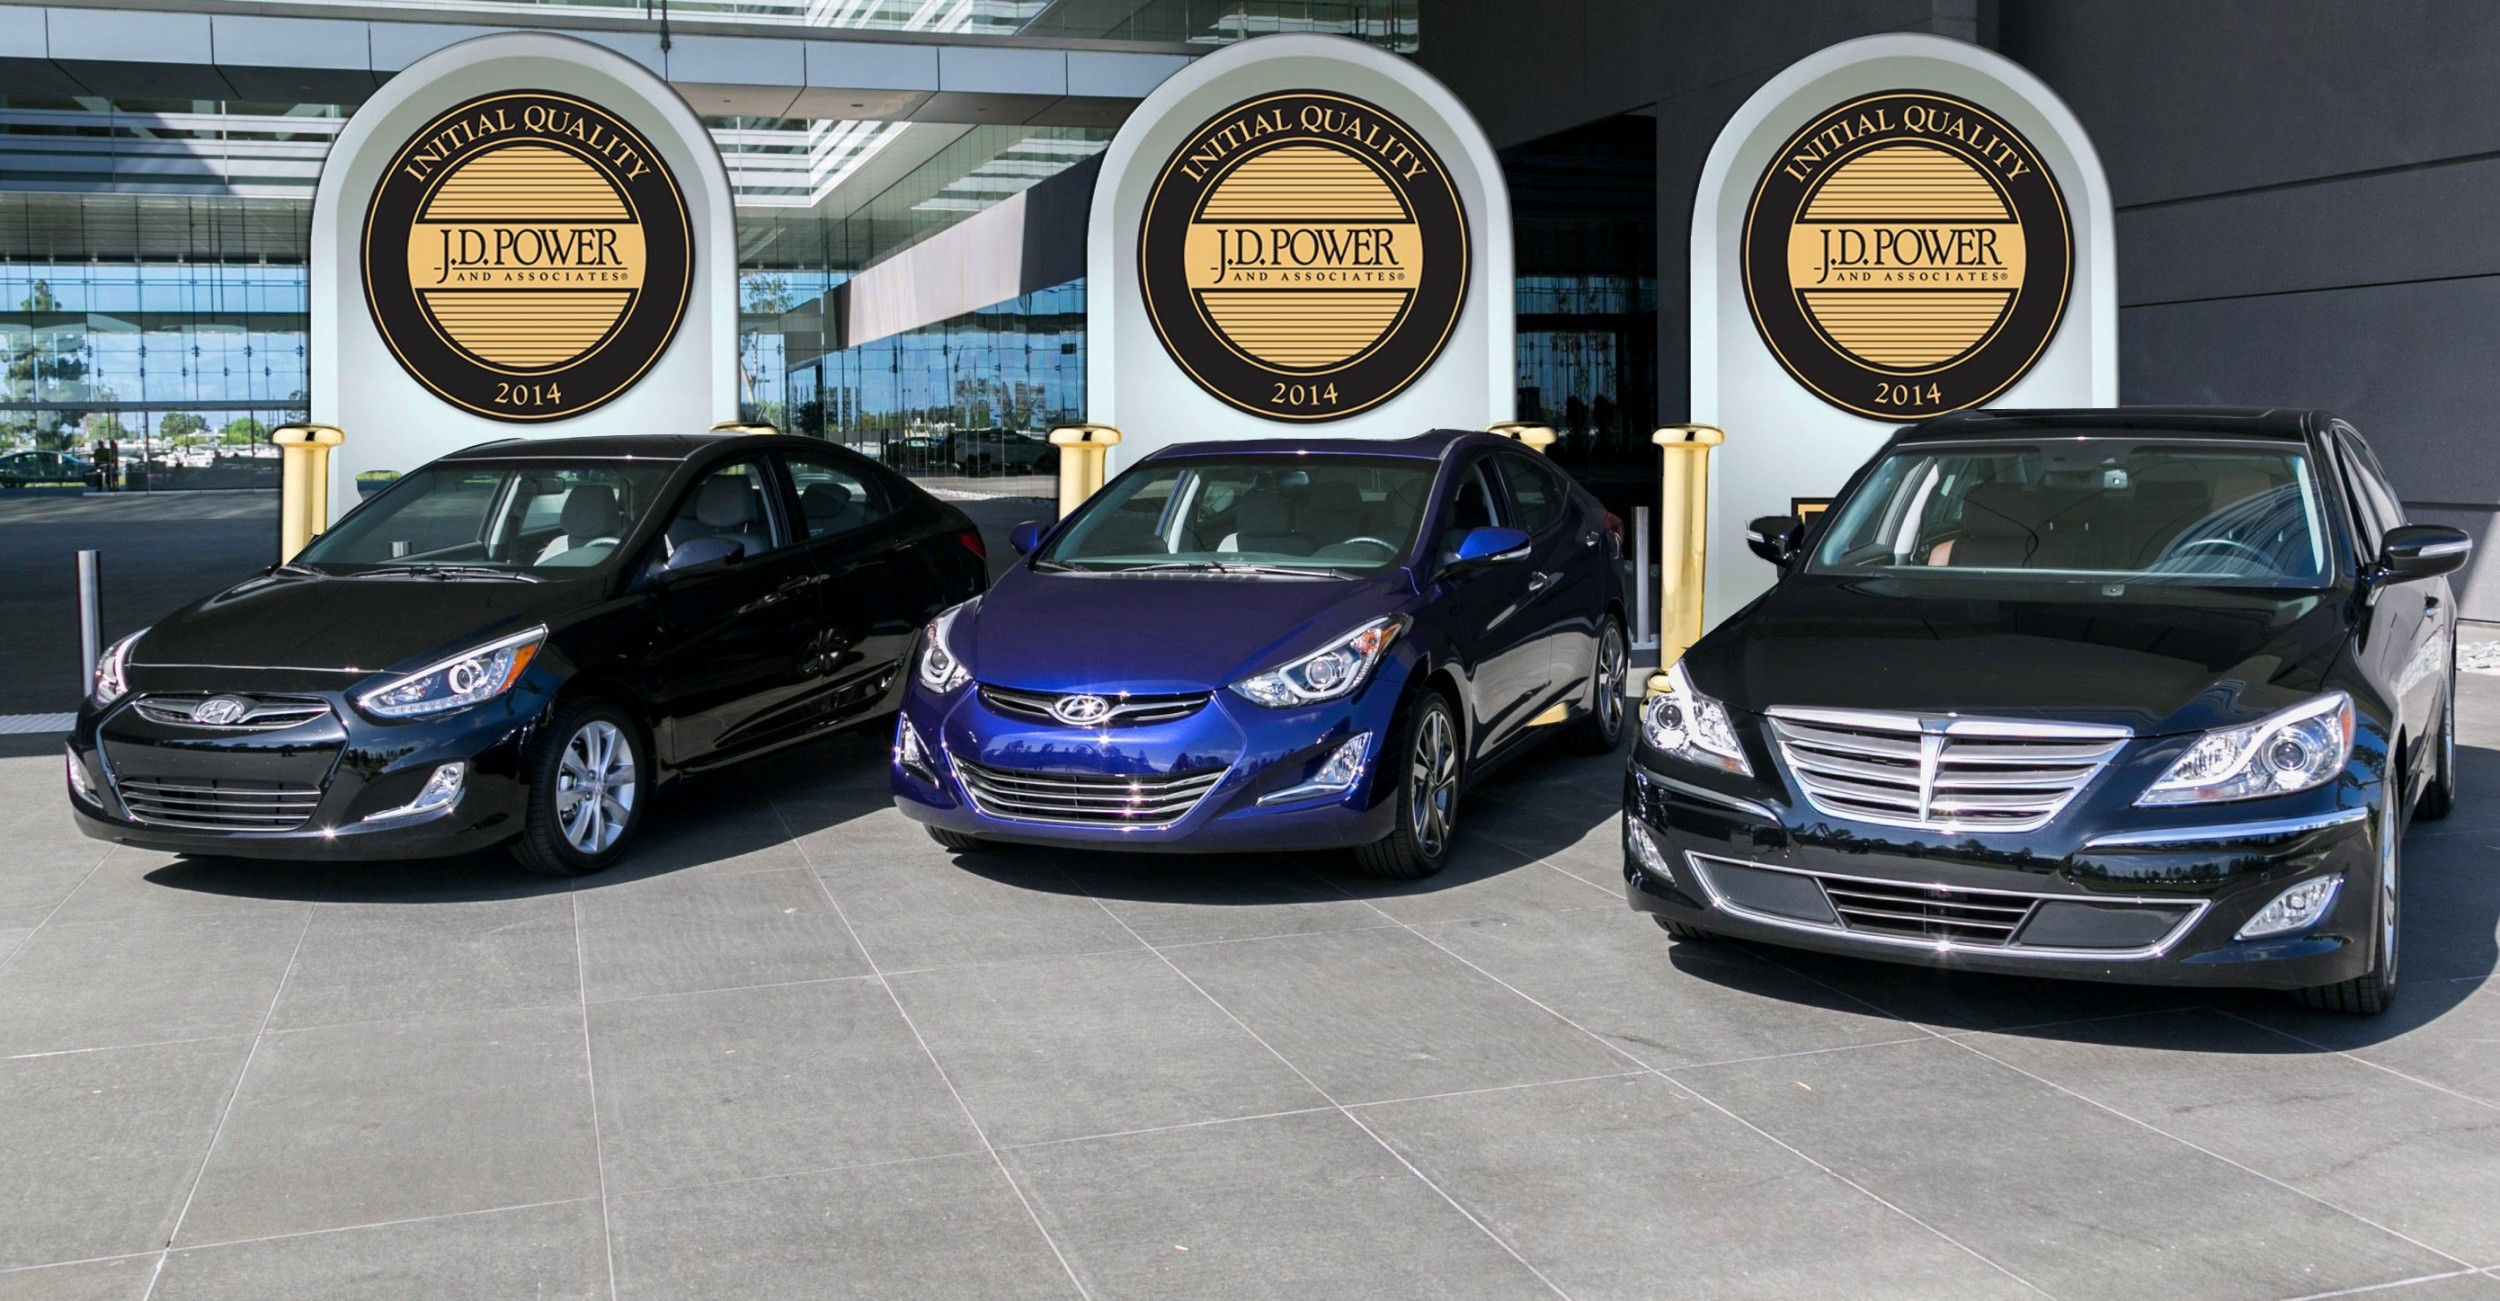 In Addition To Victories Three Vehicle Segments The Hyundai Brand Substantially Reduced Problems Per 100 Vehicles And Finished Fourth Overall